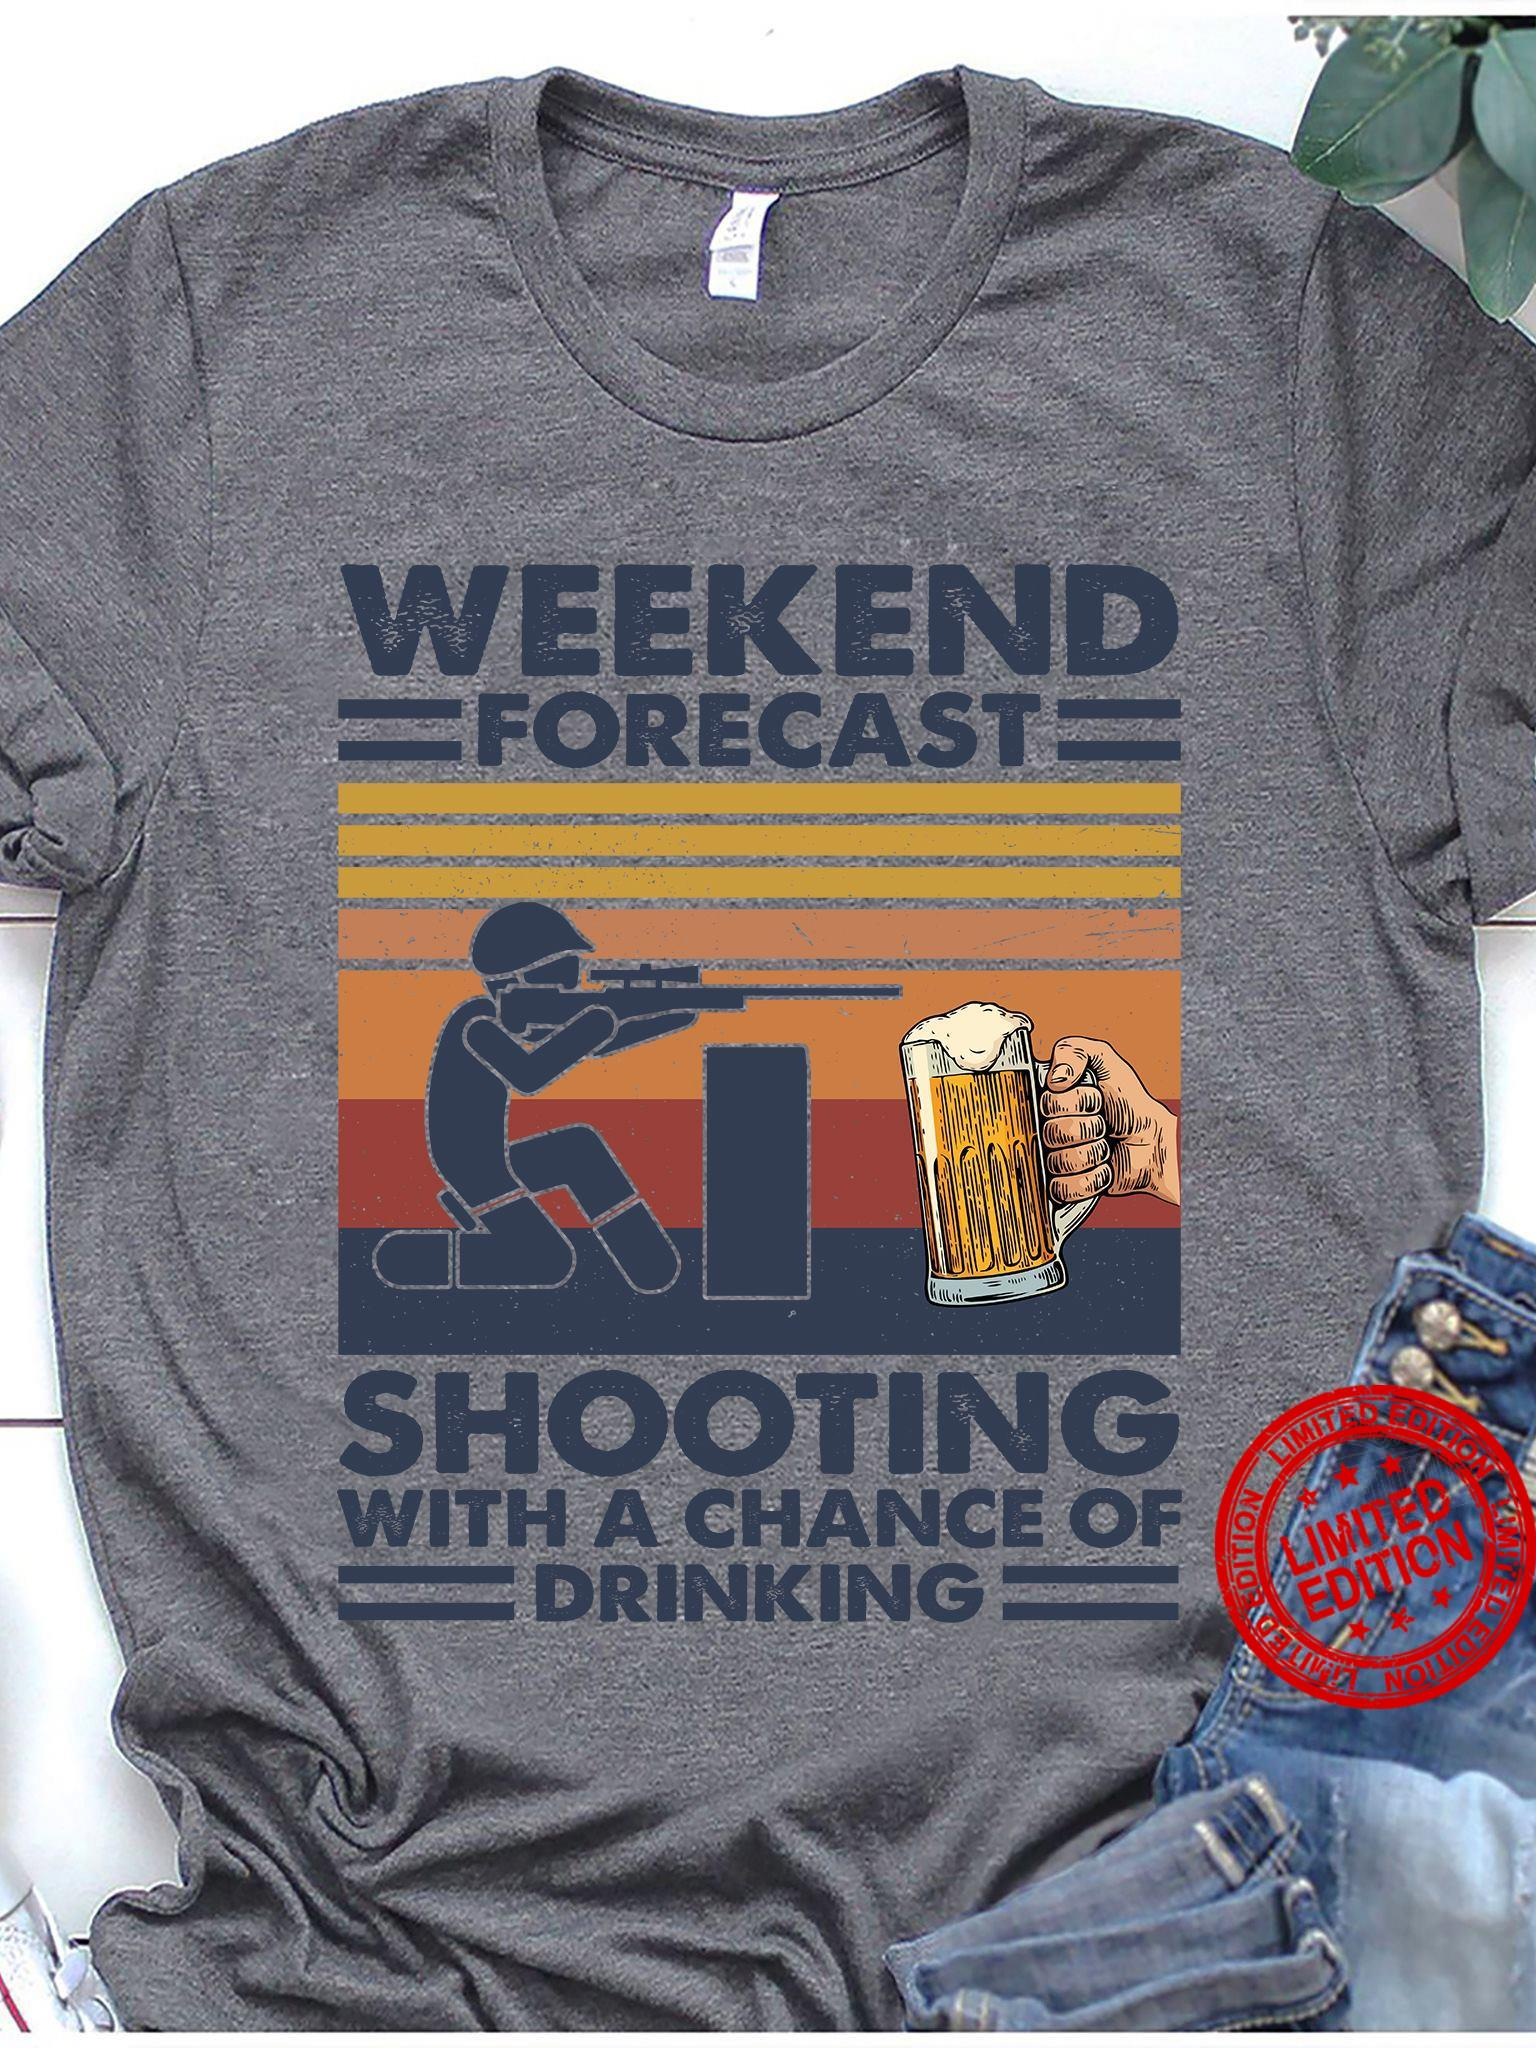 Weekend Forecast Shooting With A Chance Of Drinking Shirt